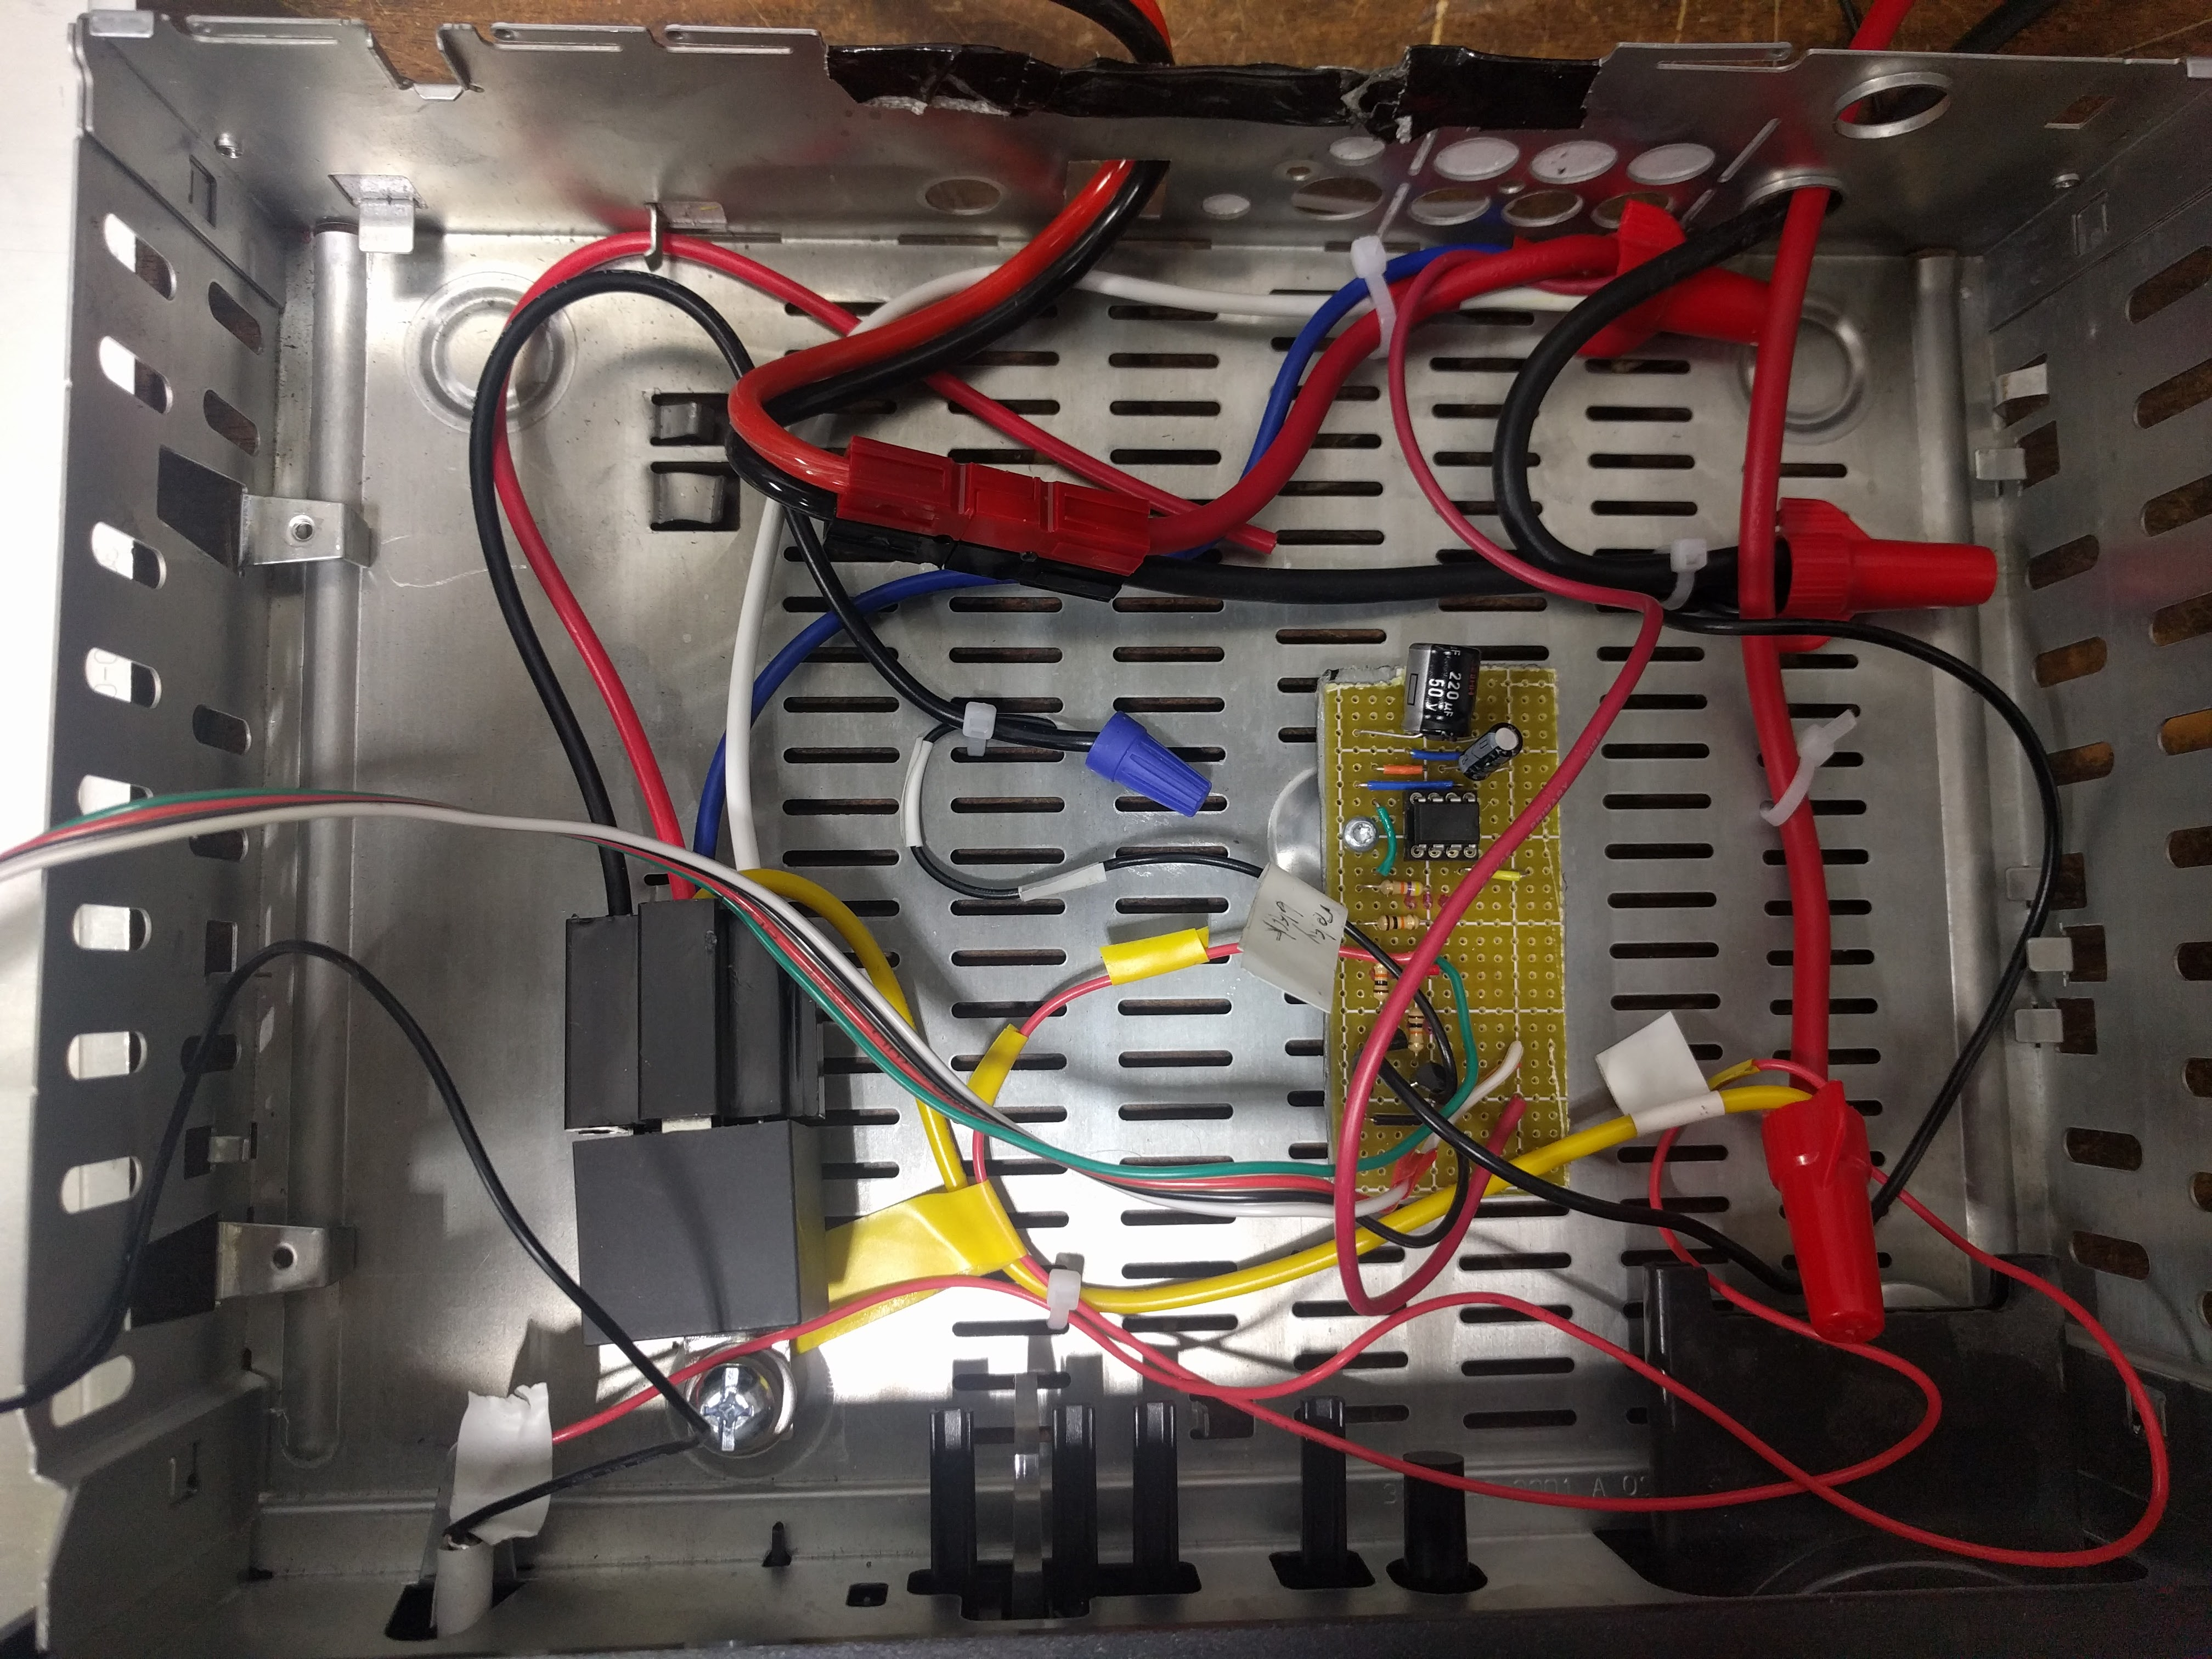 Finished product with cable ties to enforce a layout among the wires